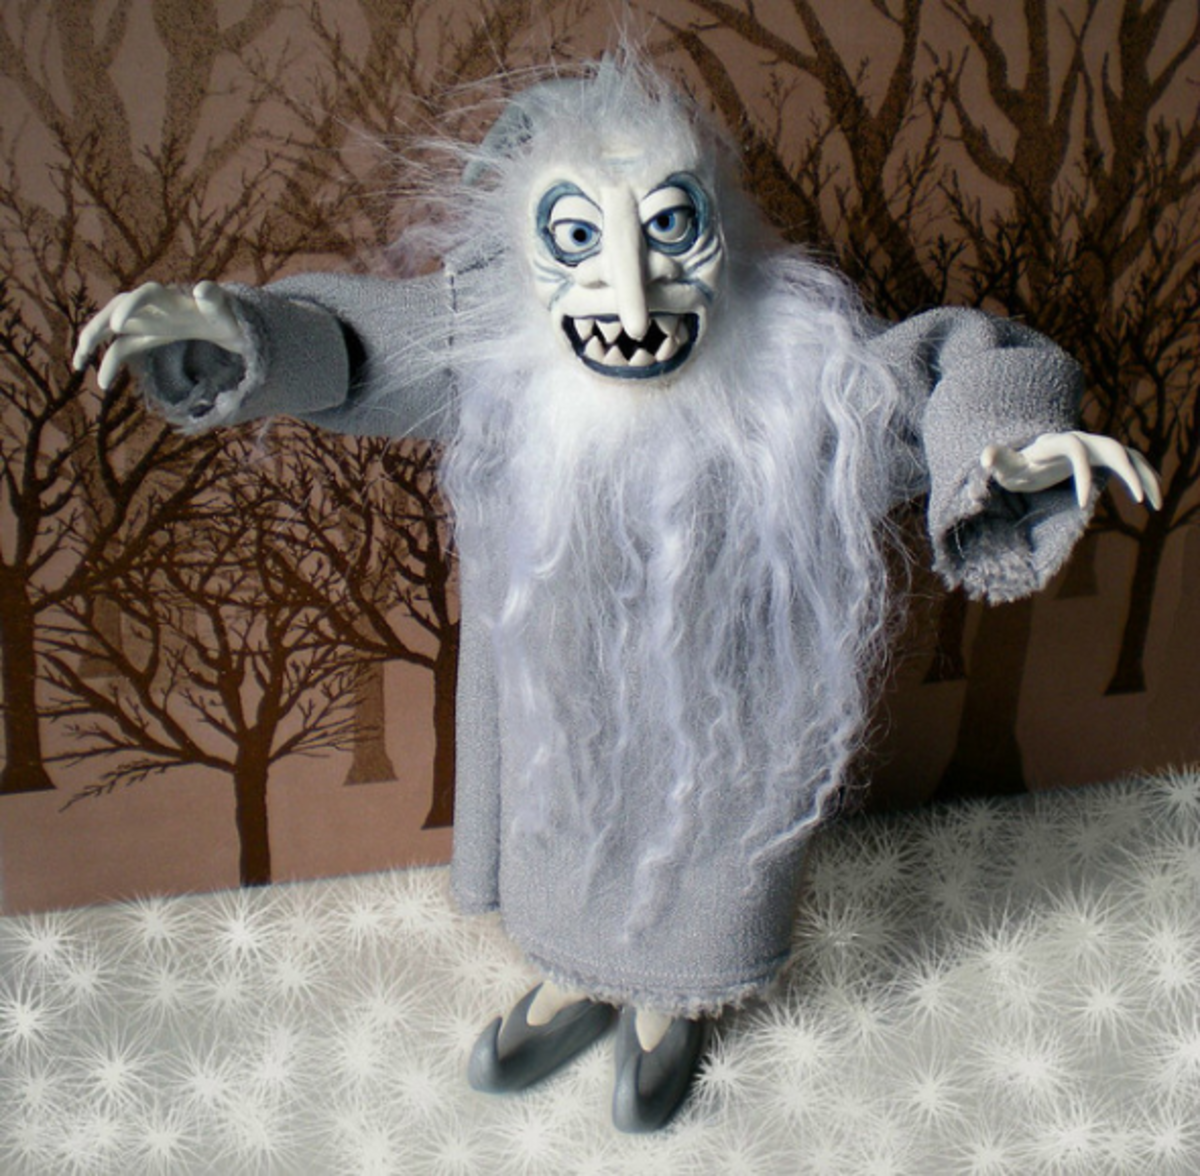 Winter Warlock is made of polymer clay with a foil and wire armature, and has been painted with acrylic paints. The hair is a mixture of Tibetan lambswool and polyester fur.